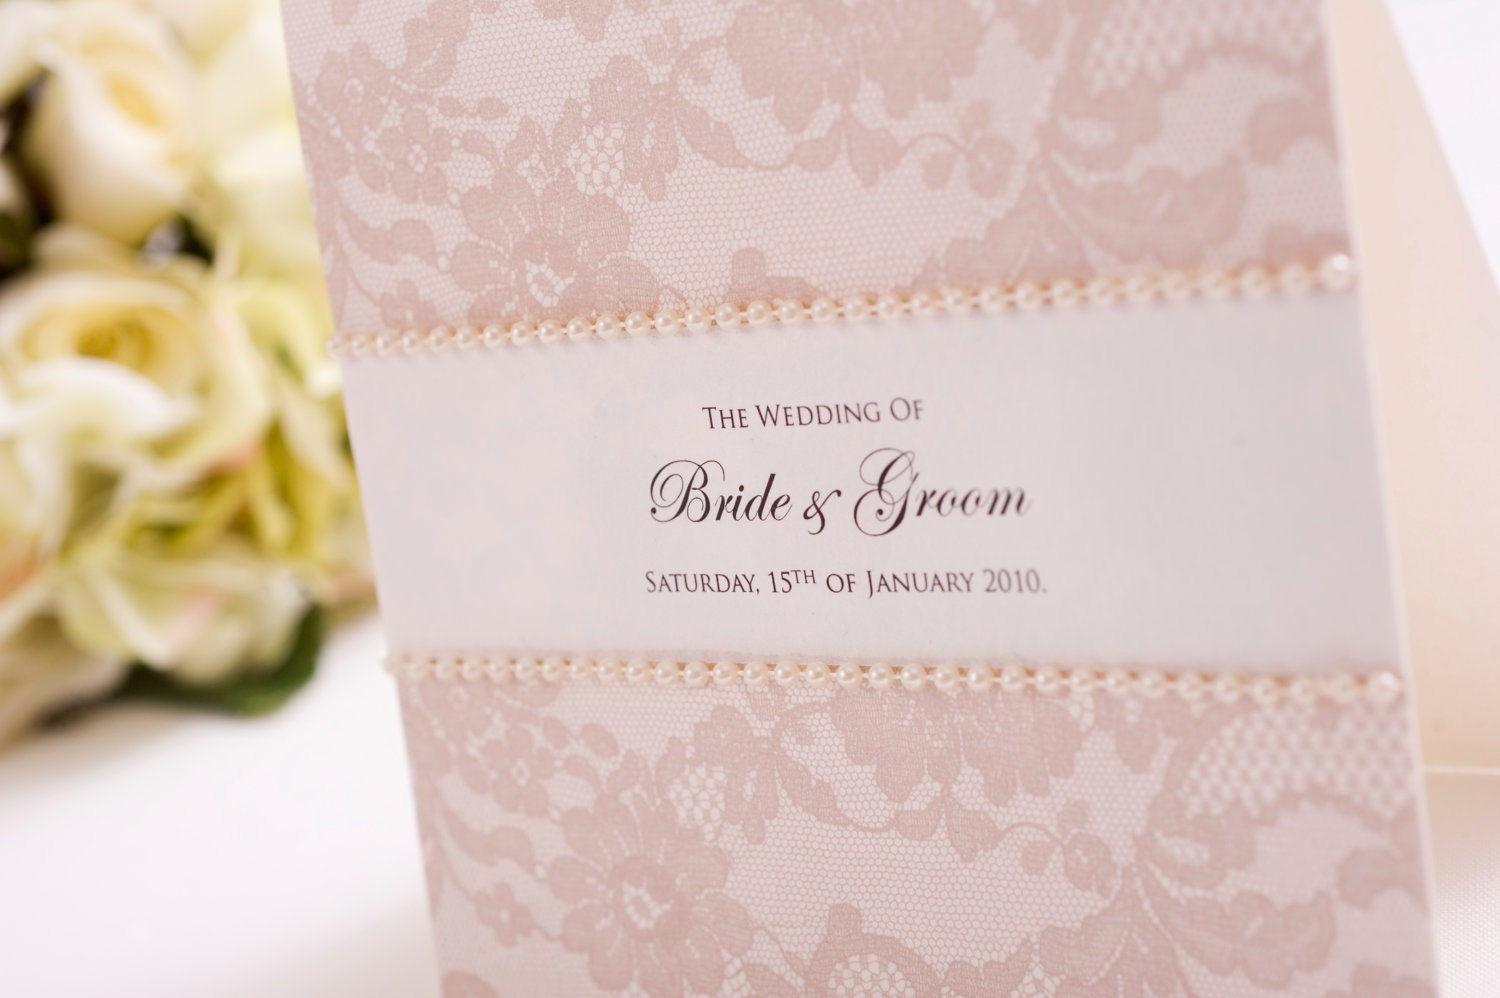 Wedding Invitation Lace: DIY Wedding Invitation Vintage Lace Invite